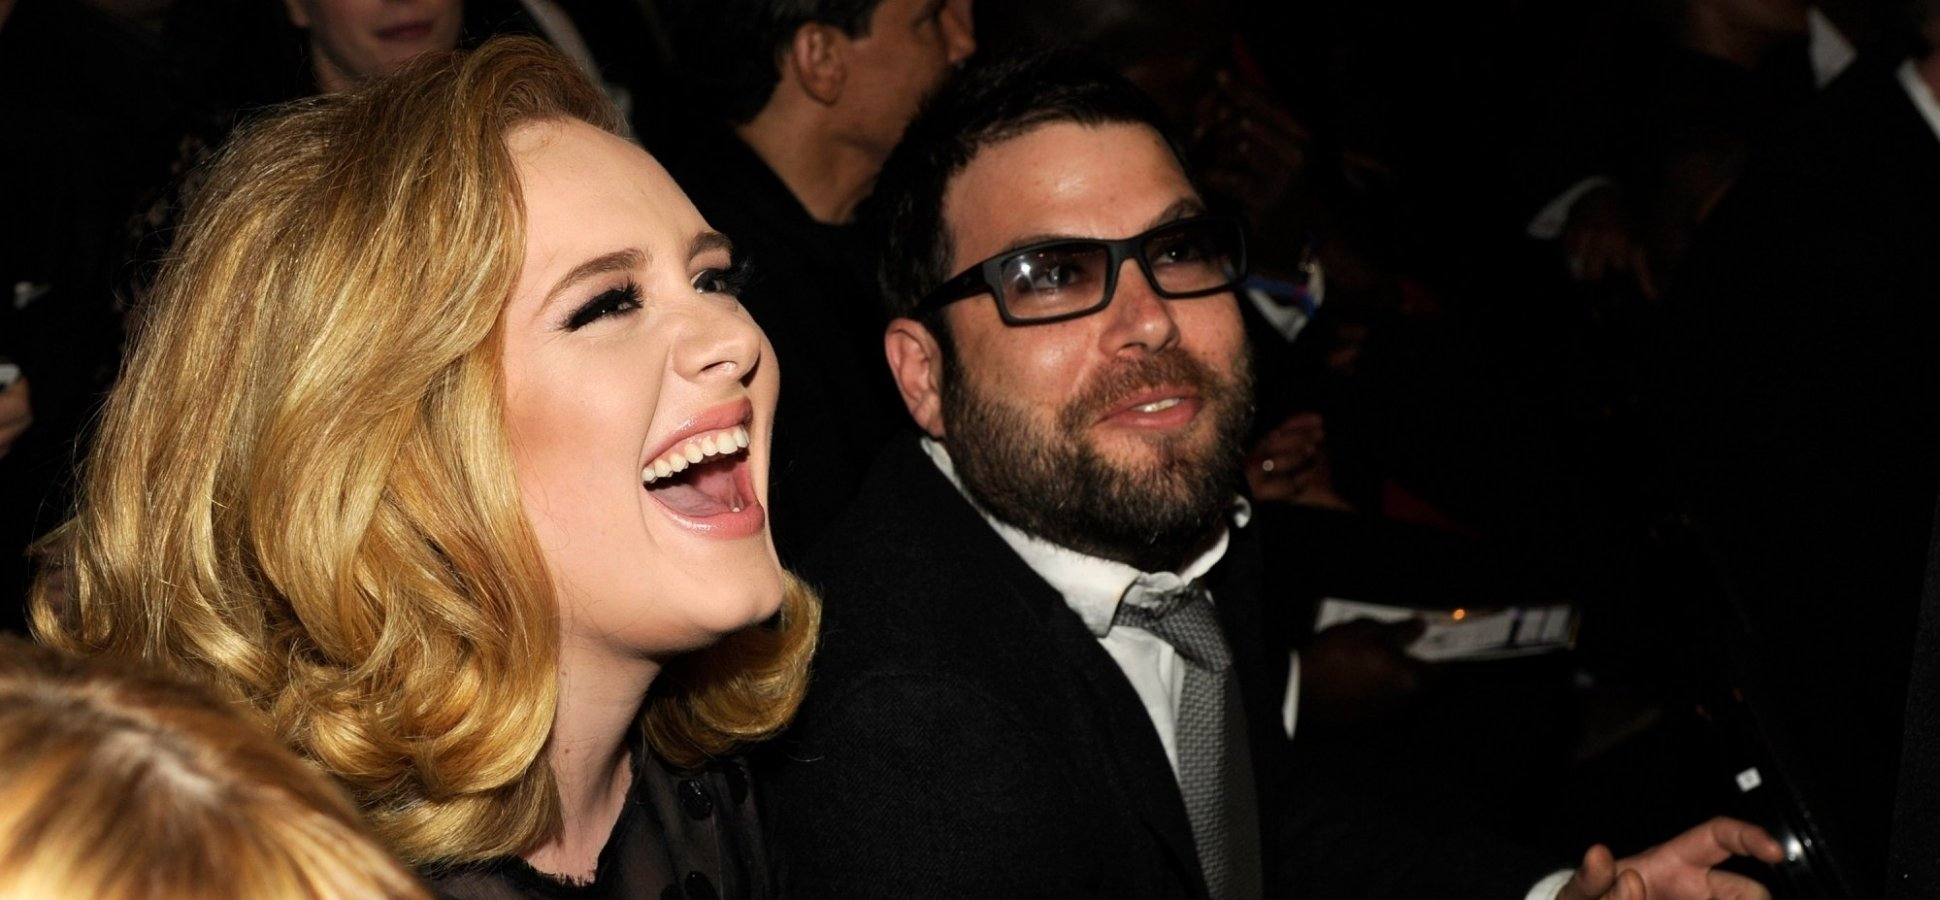 Why Adele's Breakup Doesn't Mean Great Music is Coming (and Why the Suffering Myth Hurts All of Us)